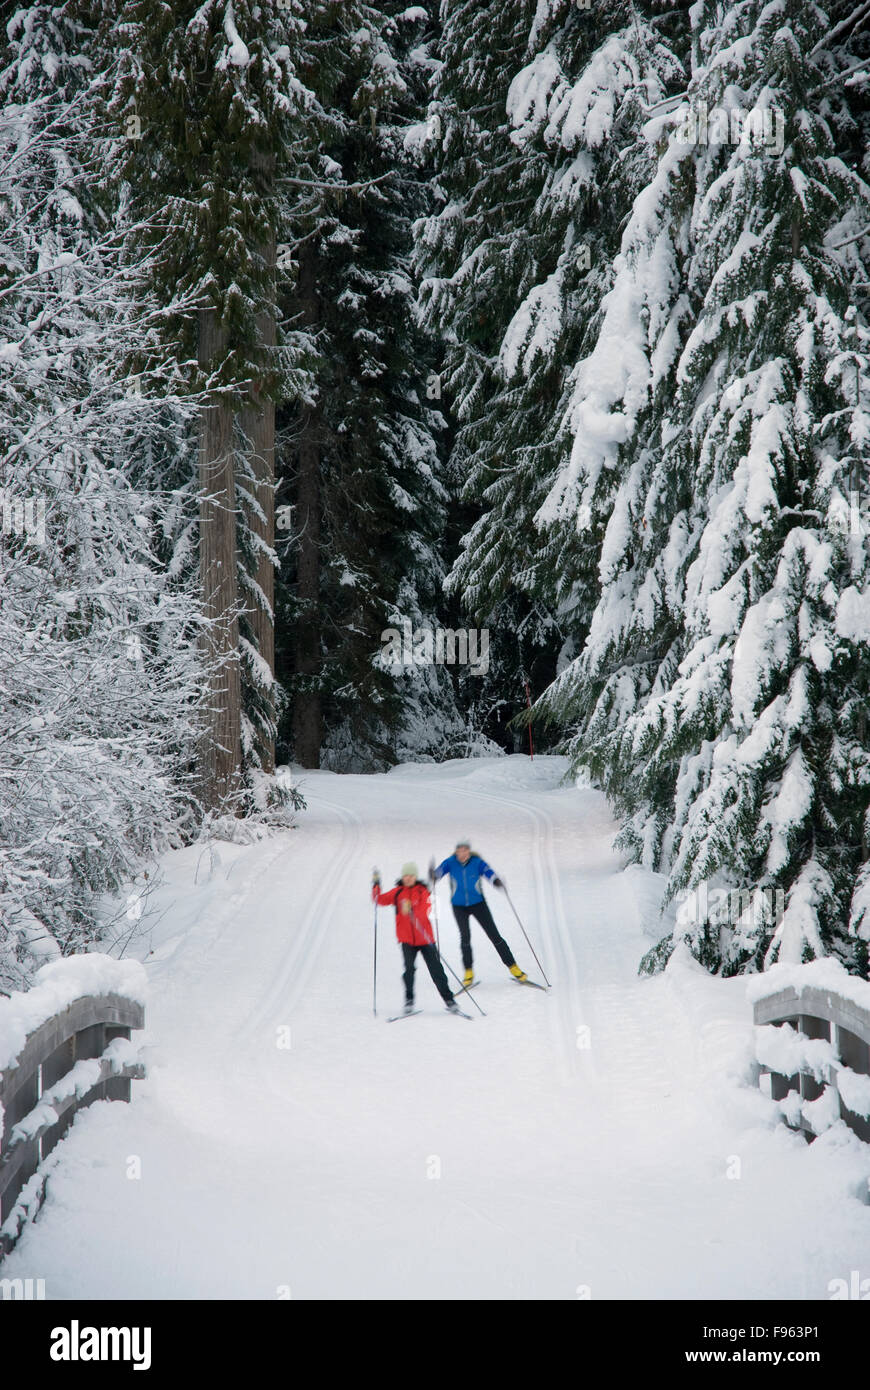 Cross country skiers Maria Lundgren and Akiko Clarke skate the trails at Lost Lake park in Whistler, BC - Stock Image